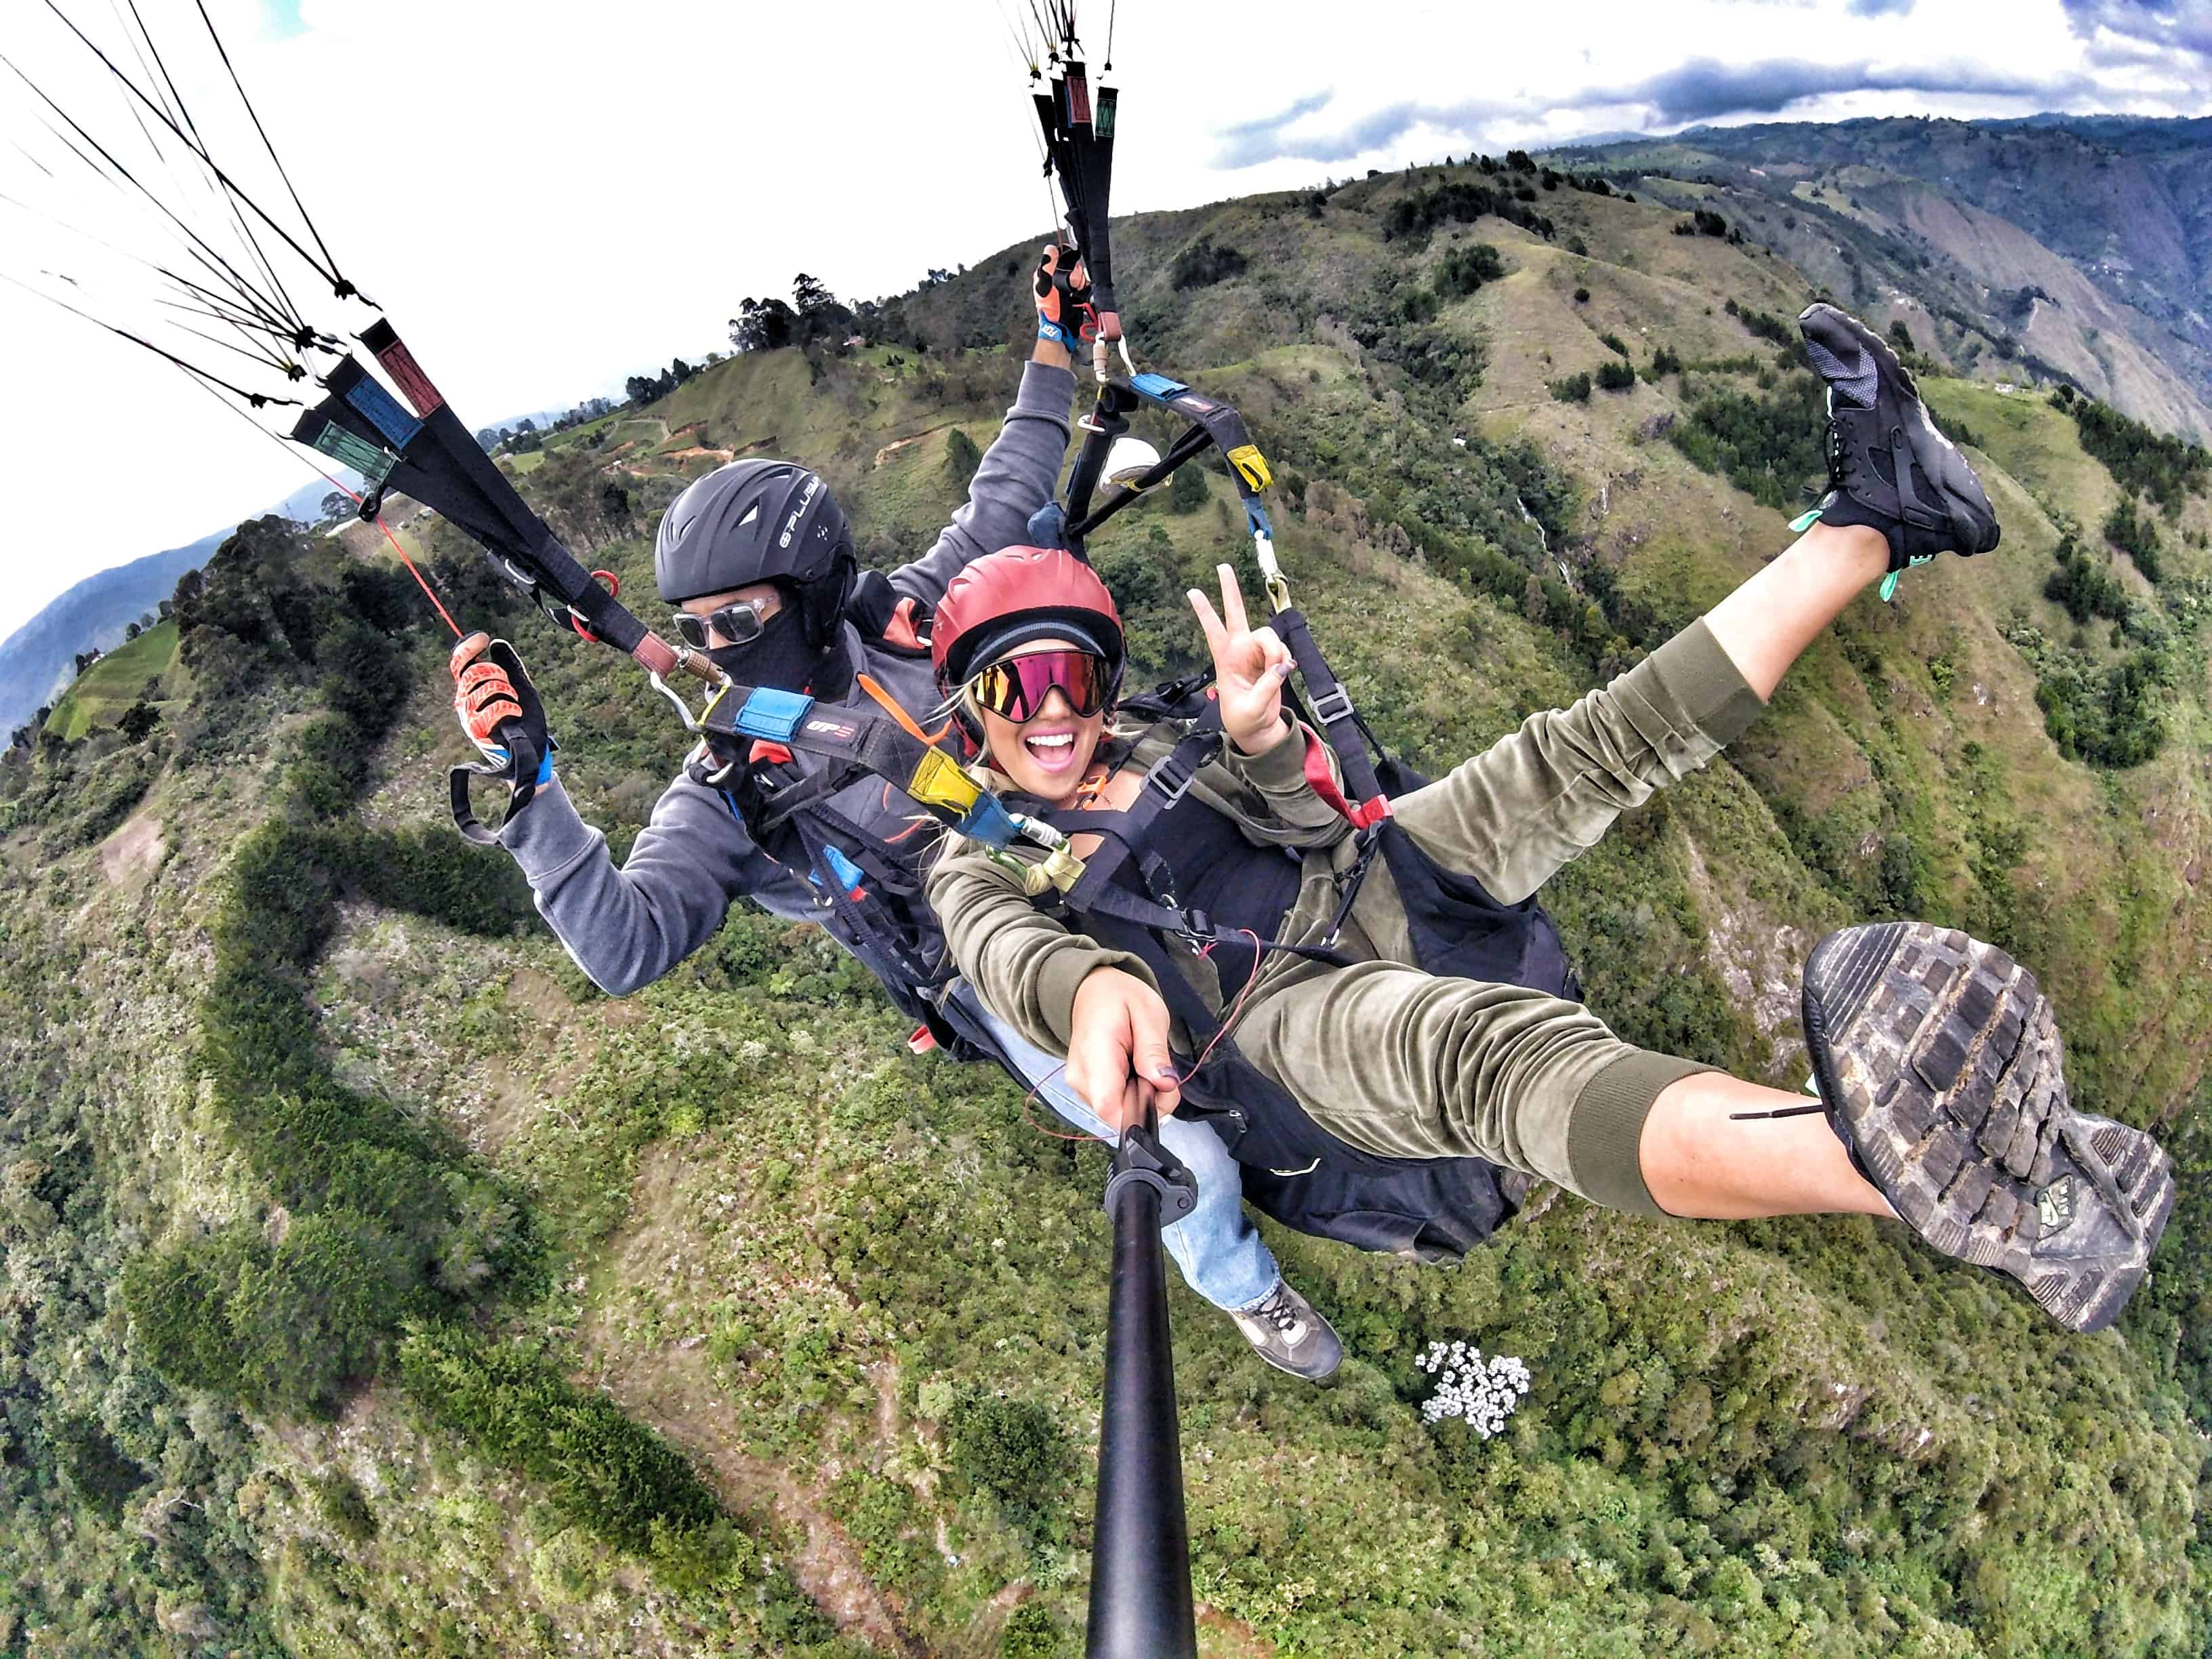 Paragliding in Medellin : An Exhilarating Experience